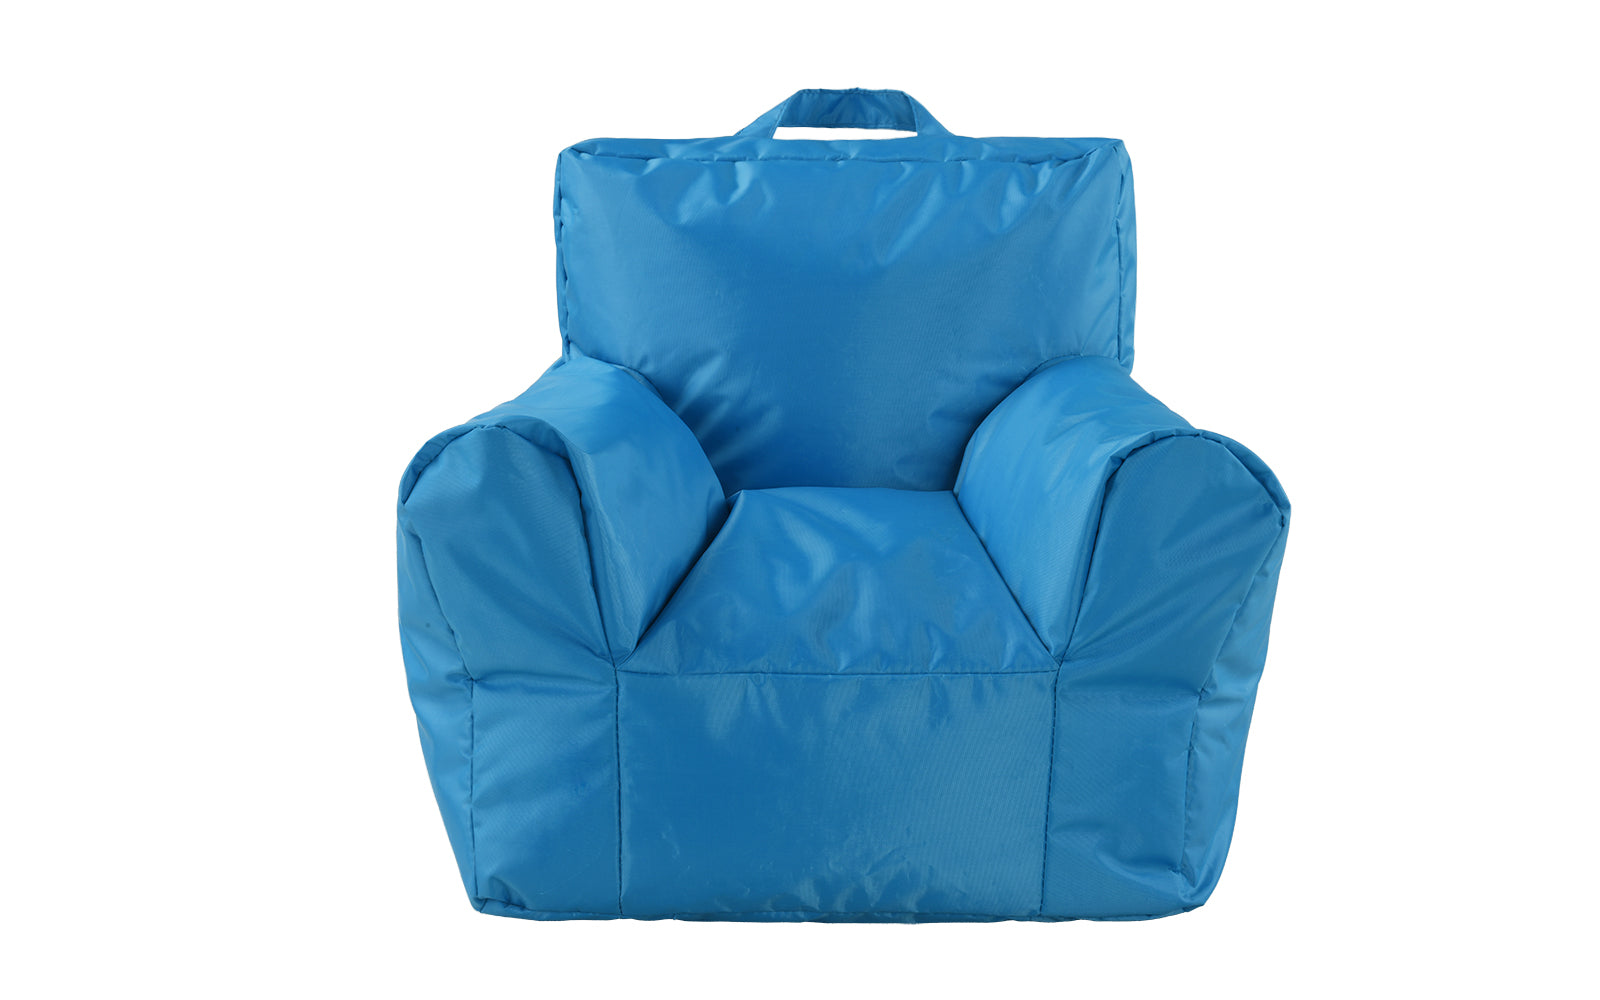 Fine Cheap Bean Bag Chairs For Sale Adults Kids Sofamania Alphanode Cool Chair Designs And Ideas Alphanodeonline